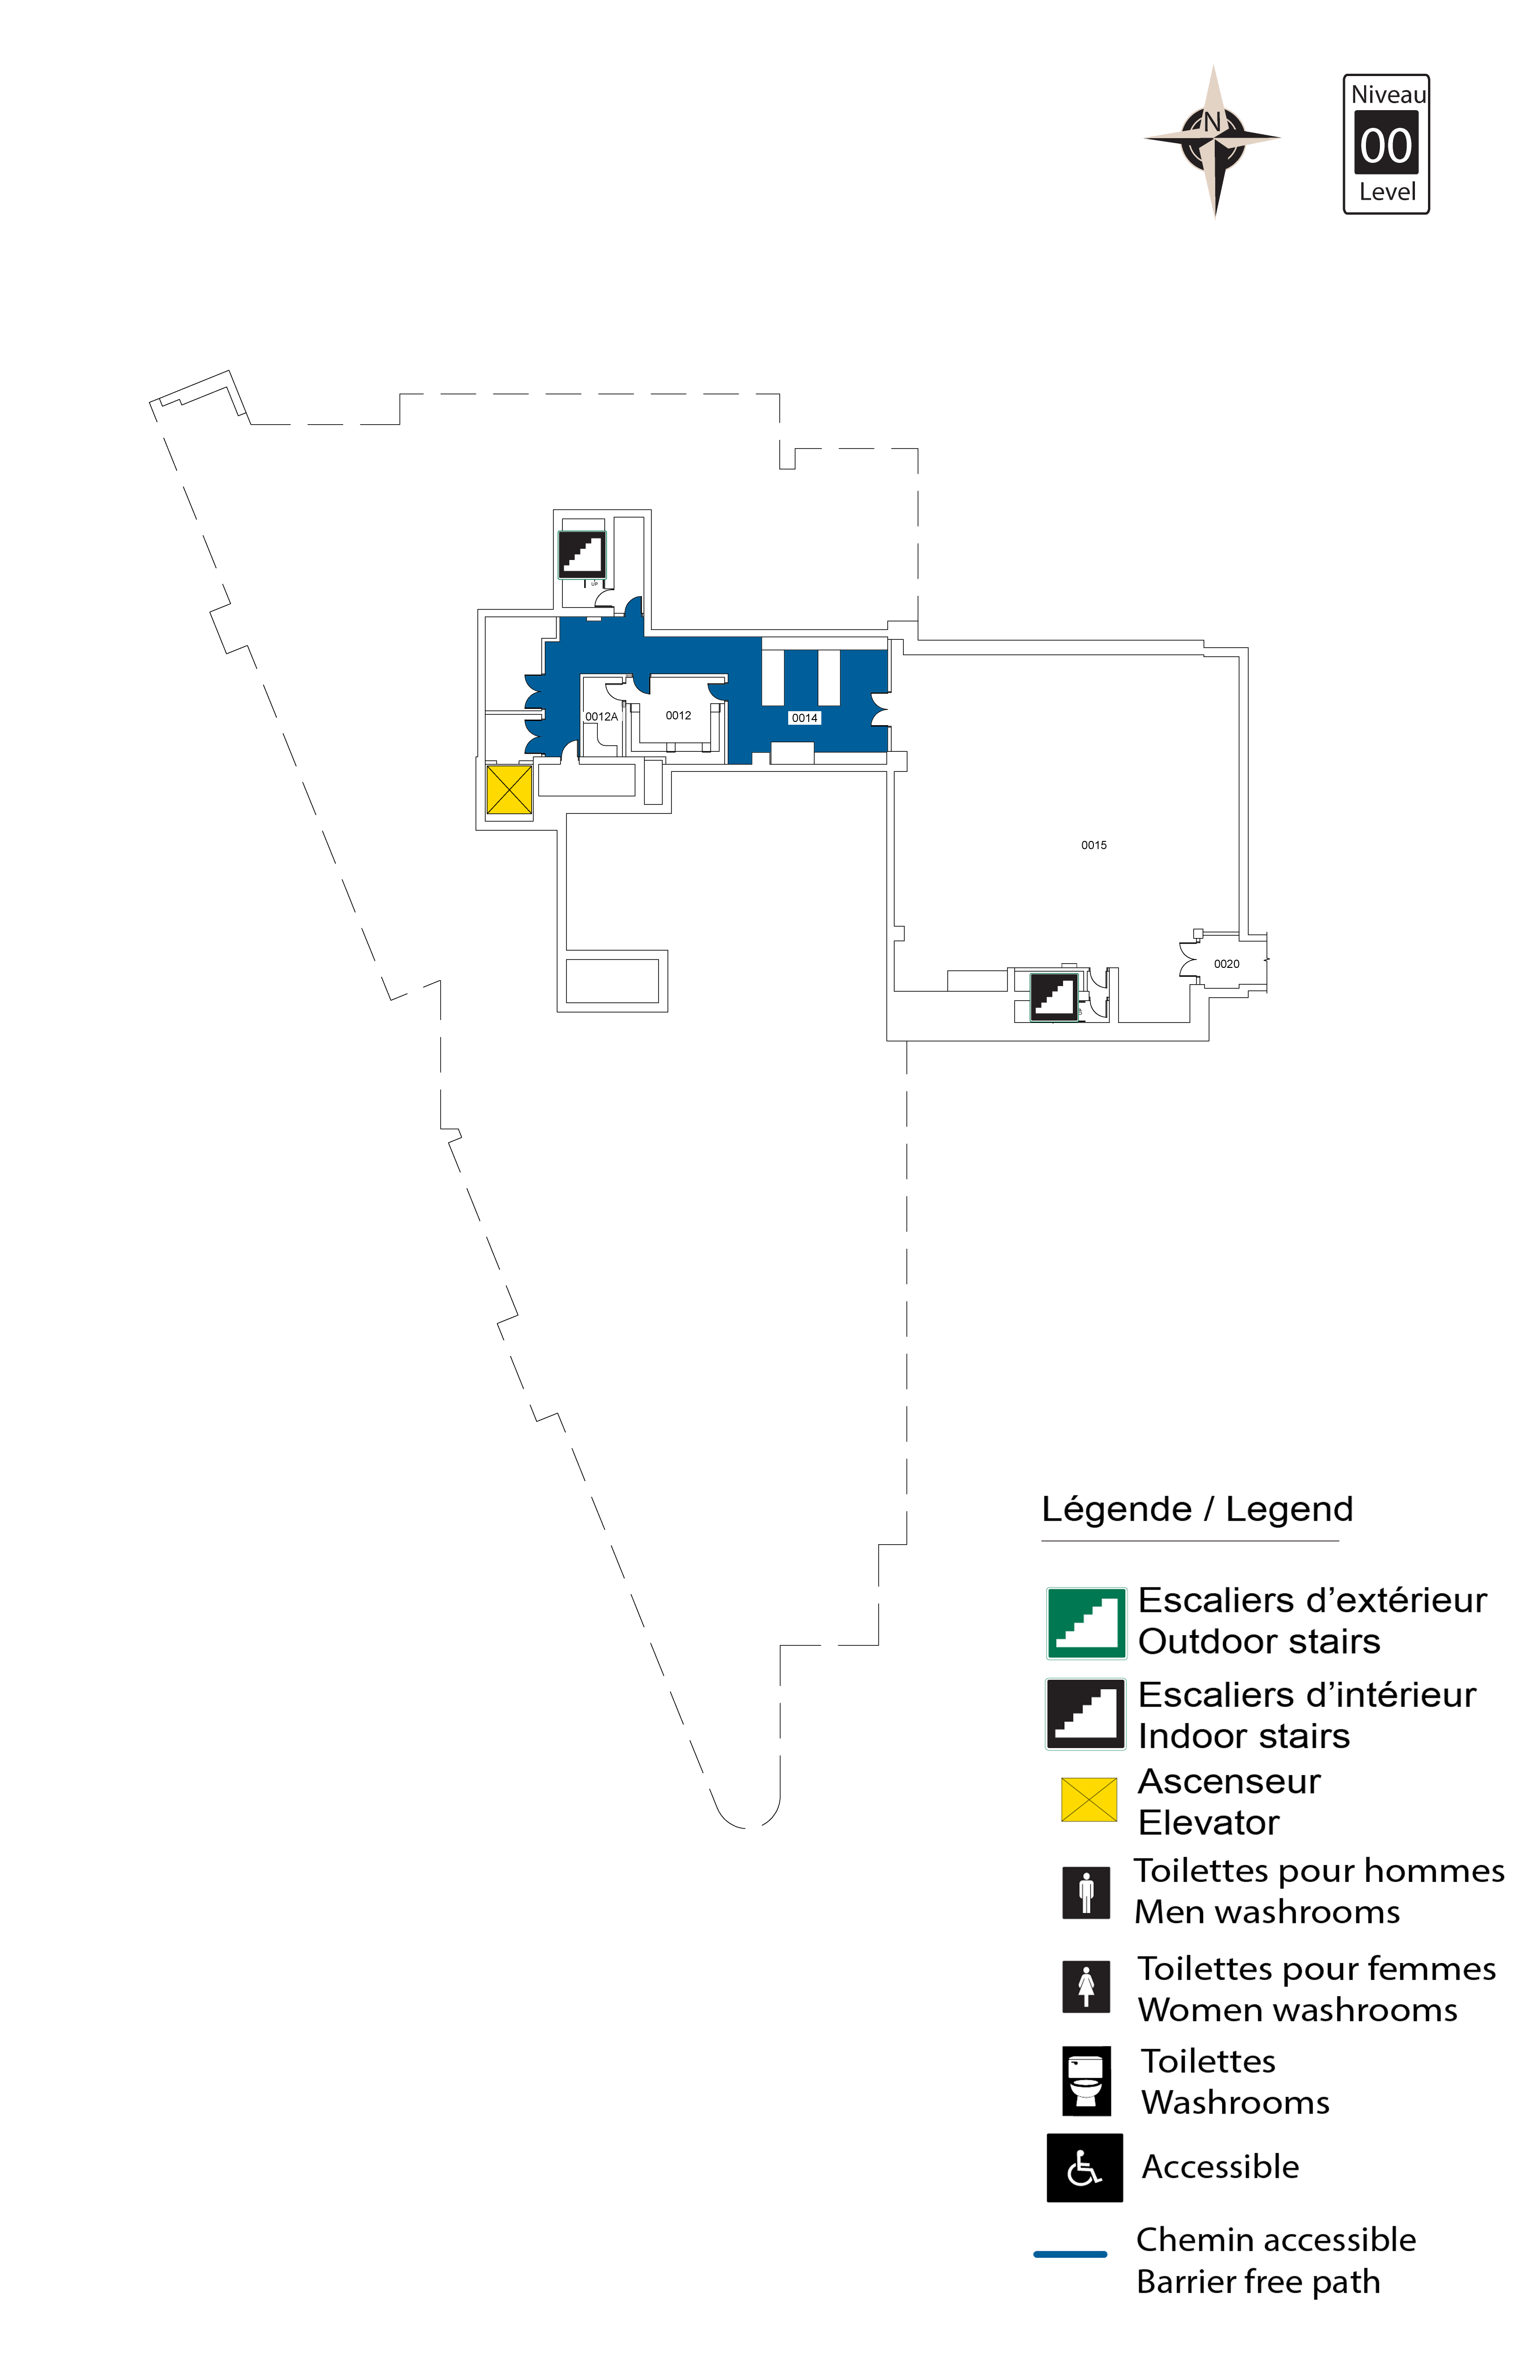 Accessible Map - FSS Level 00